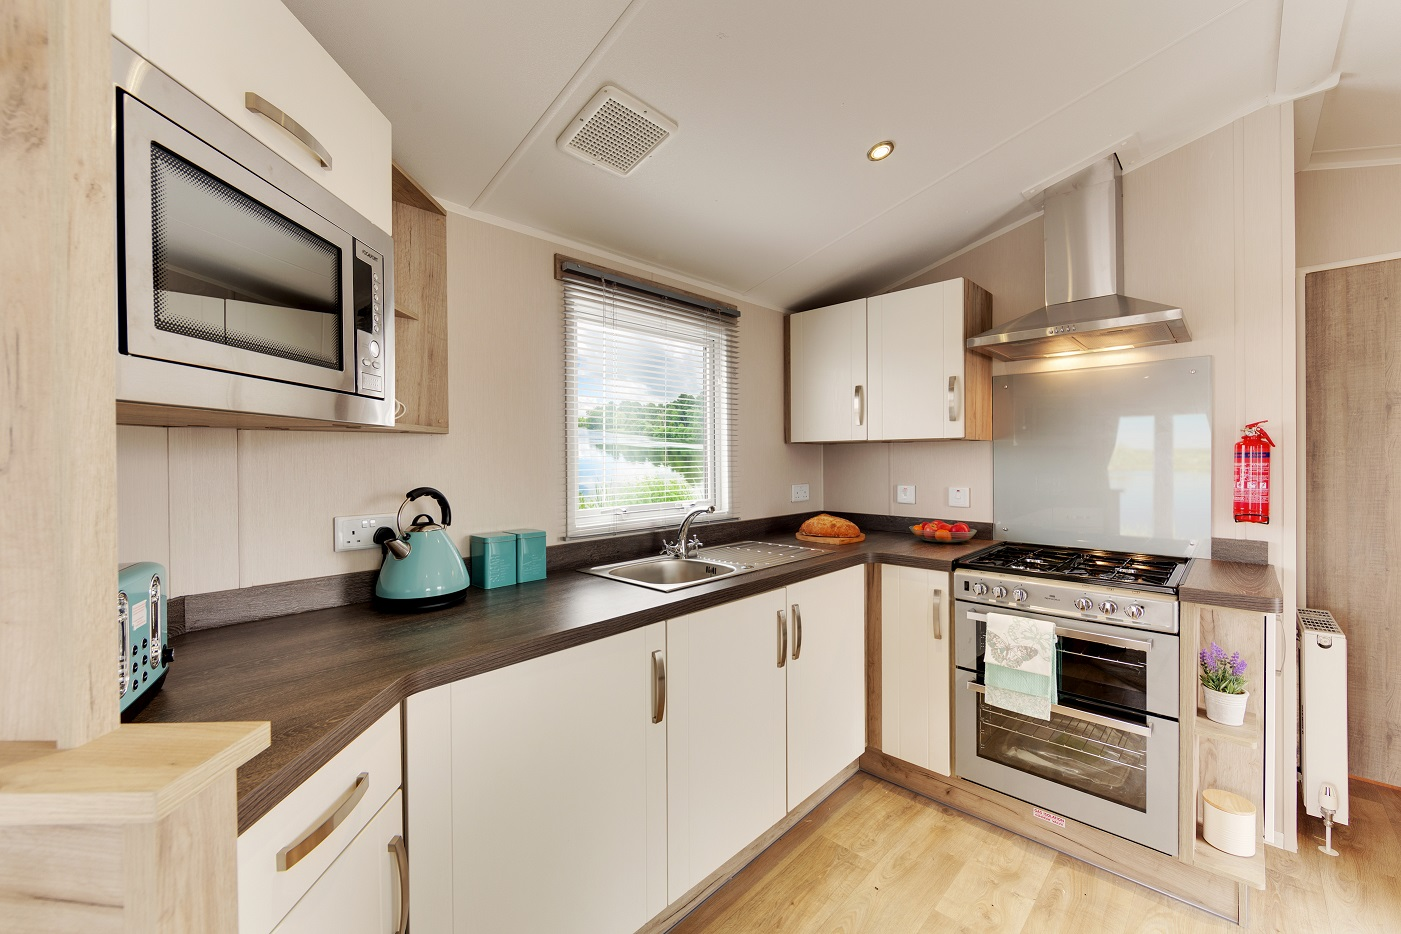 Willerby Skye: Static Caravans and Holiday Homes for Sale on Caravan Parks, South Shields, Durham and Weardale Large Image 3